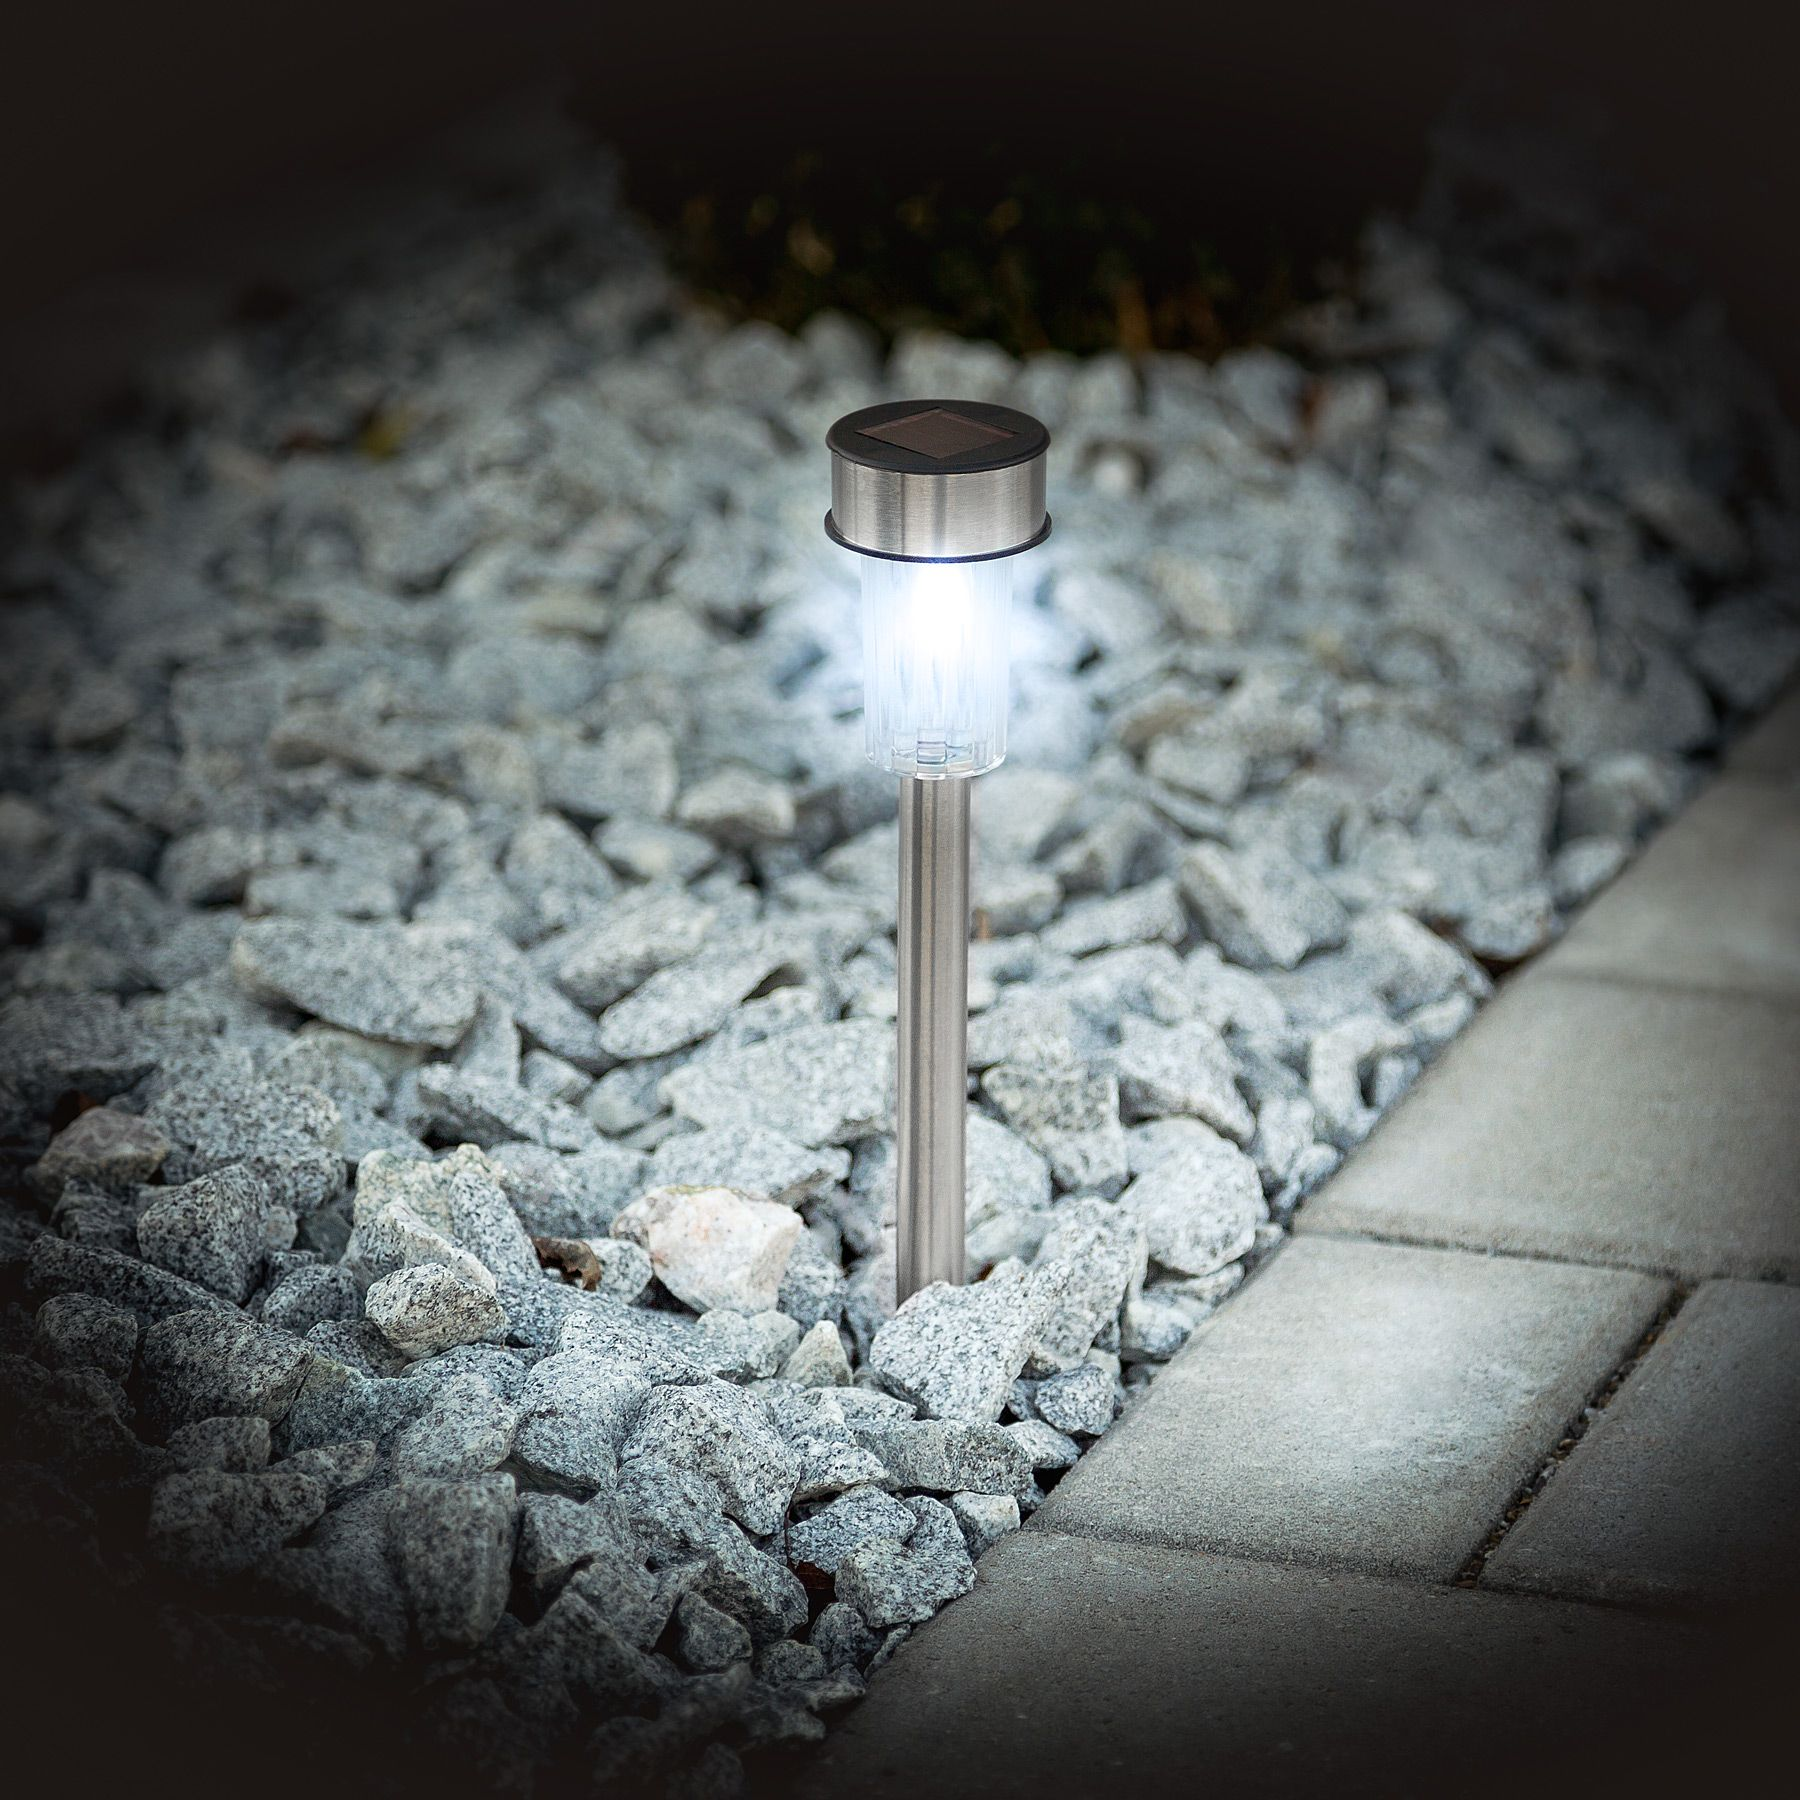 Tuinlampen Op Zonne Energie 8x Led Solar Tuinverlichting Lamp Tuinlamp Op Spies Zonne